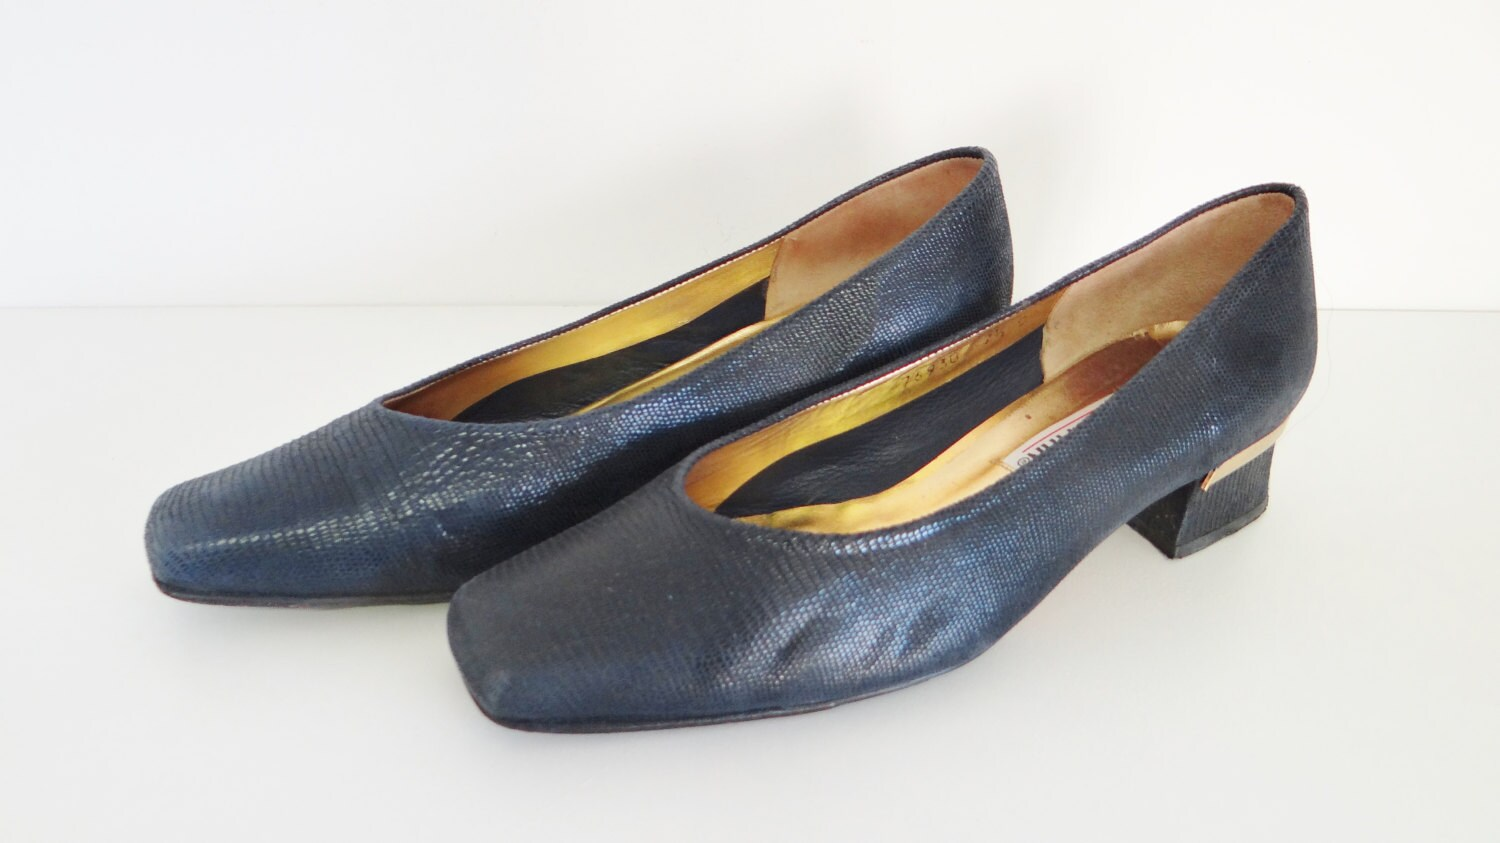 Vintage Leather Shoes By Timothy Hitsman 1960s Navy Blue Mock